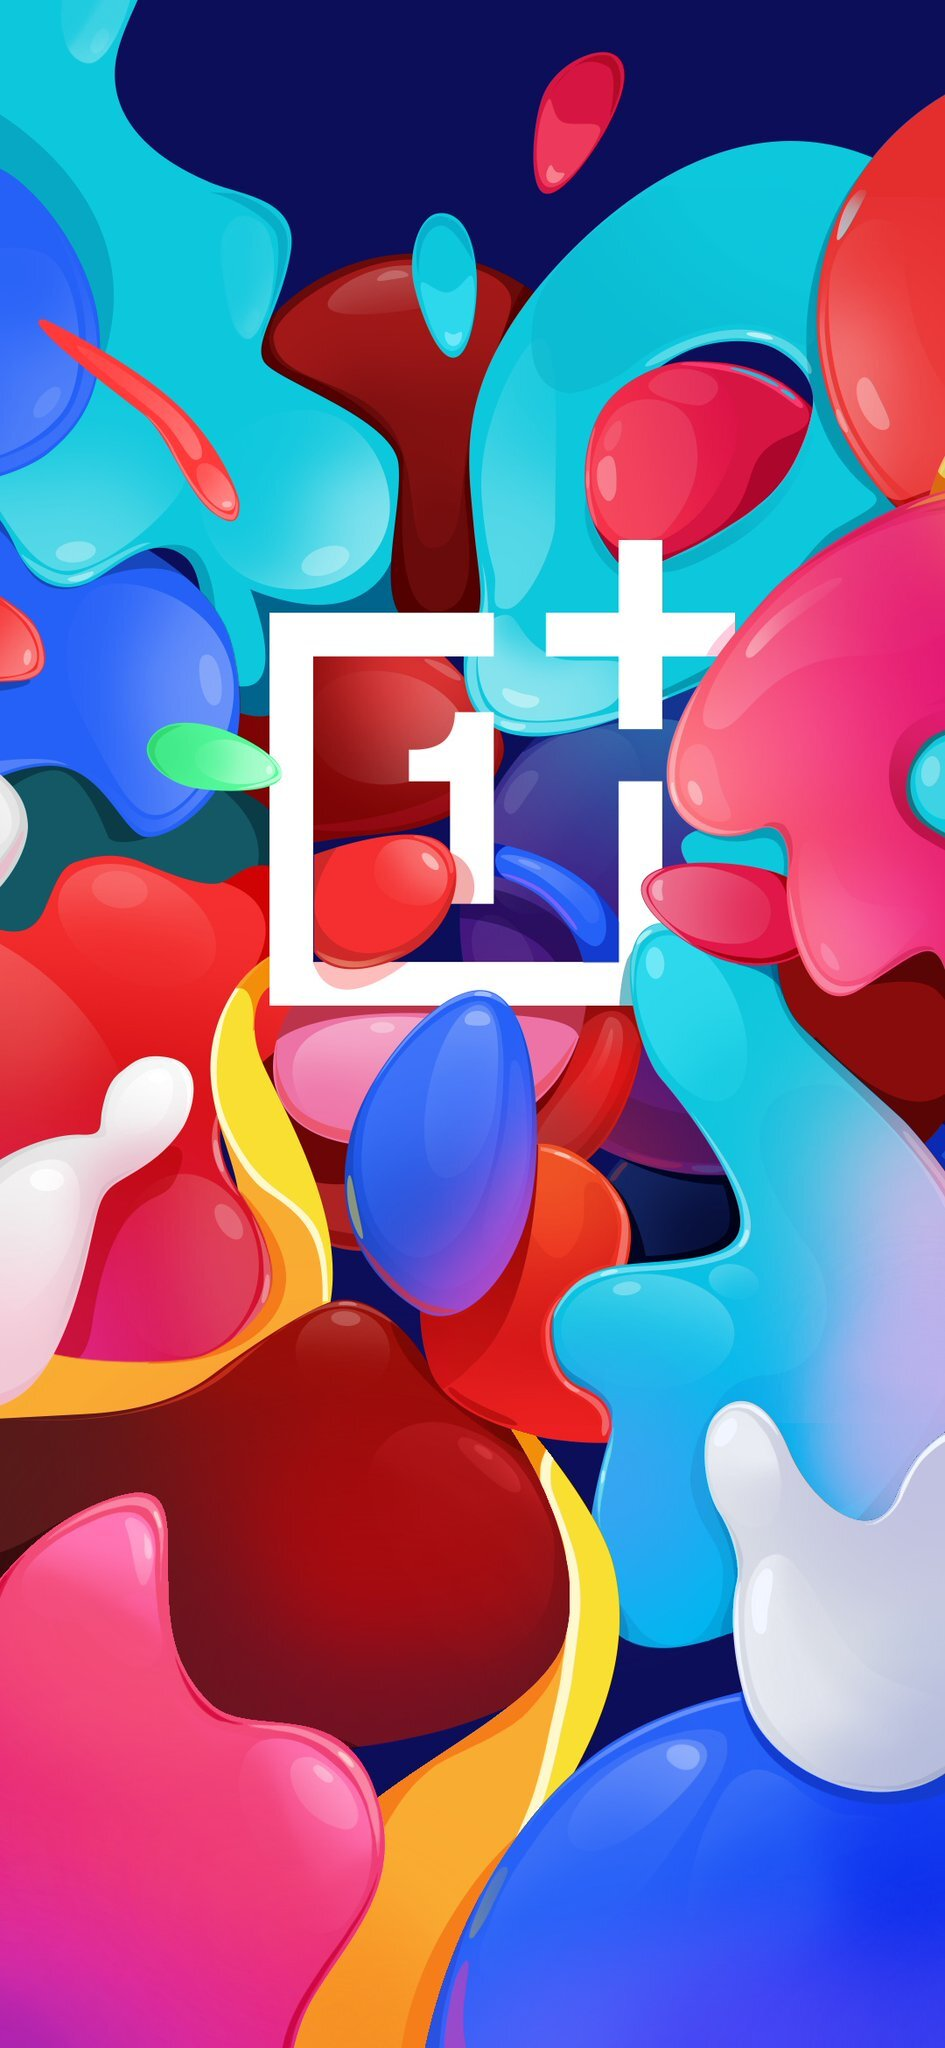 Download New Oneplus Wallpapers W Colorful New Logo 9to5google